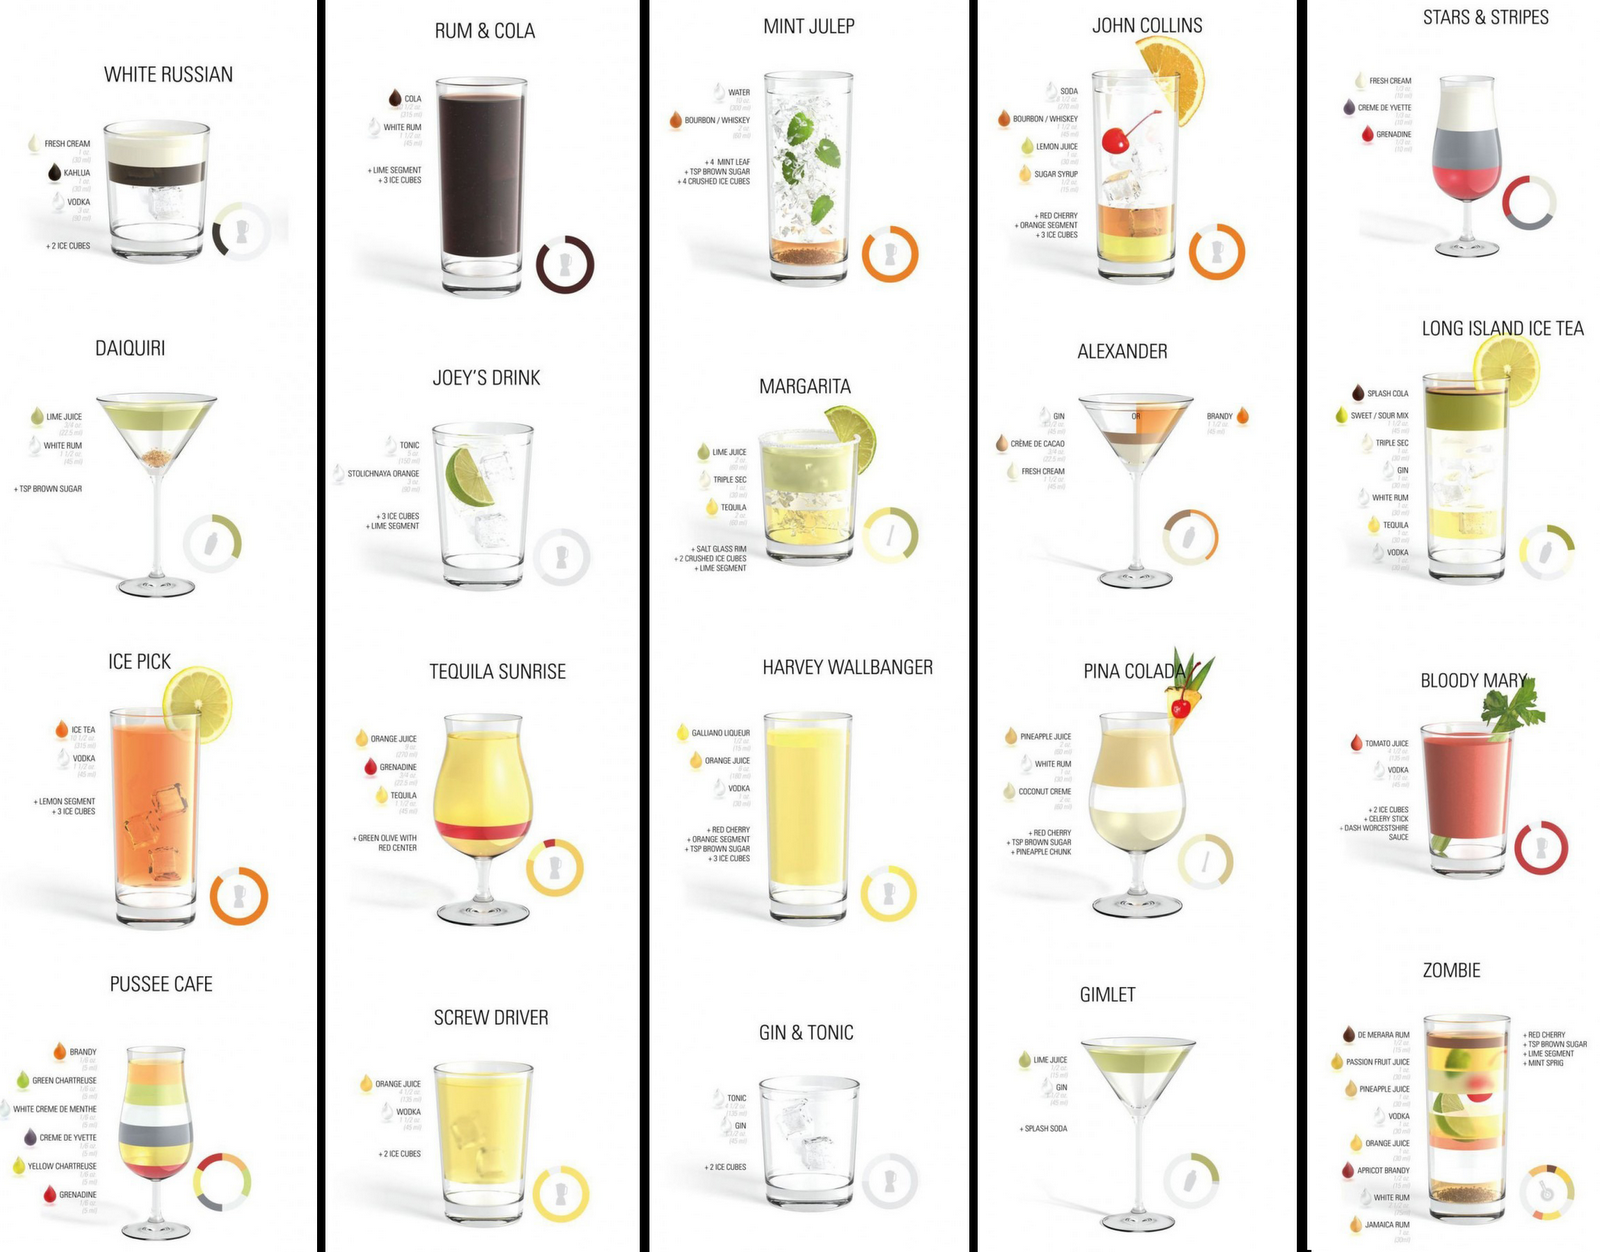 Liquor and mixed drinks infographic bigtopapps for List of mixed drinks